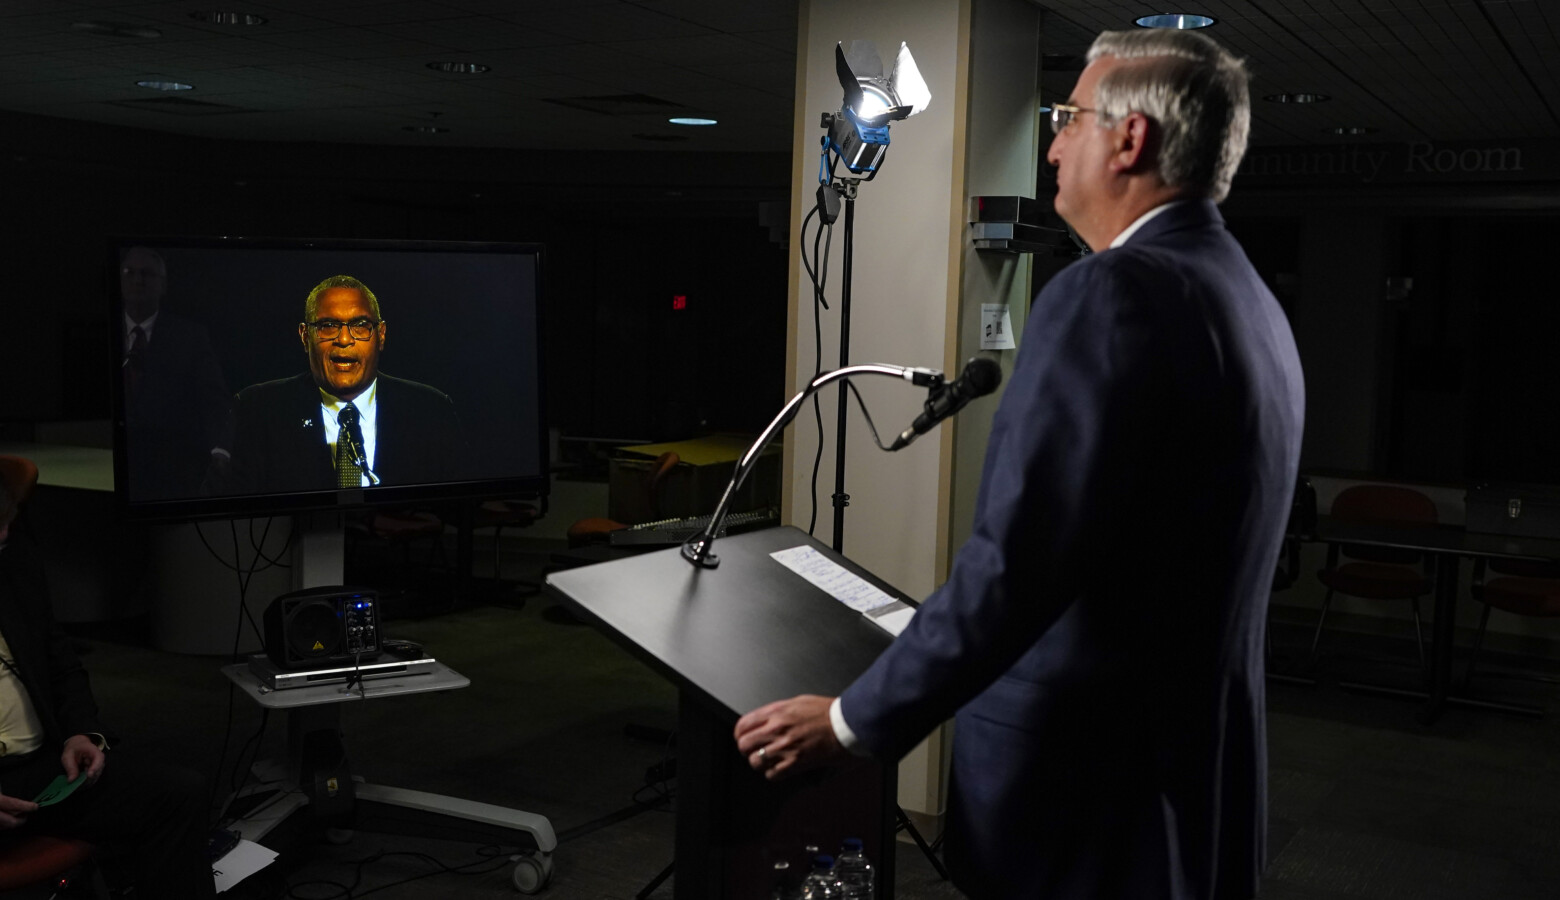 Due to COVID-19 precautions, the three gubernatorial candidates and the moderator were in separate rooms at WFYI studios in Indianapolis. Here, Republican Gov. Eric Holcomb watches Democrat Dr. Woody Myers speak. (Darron Cummings/Associated Press)